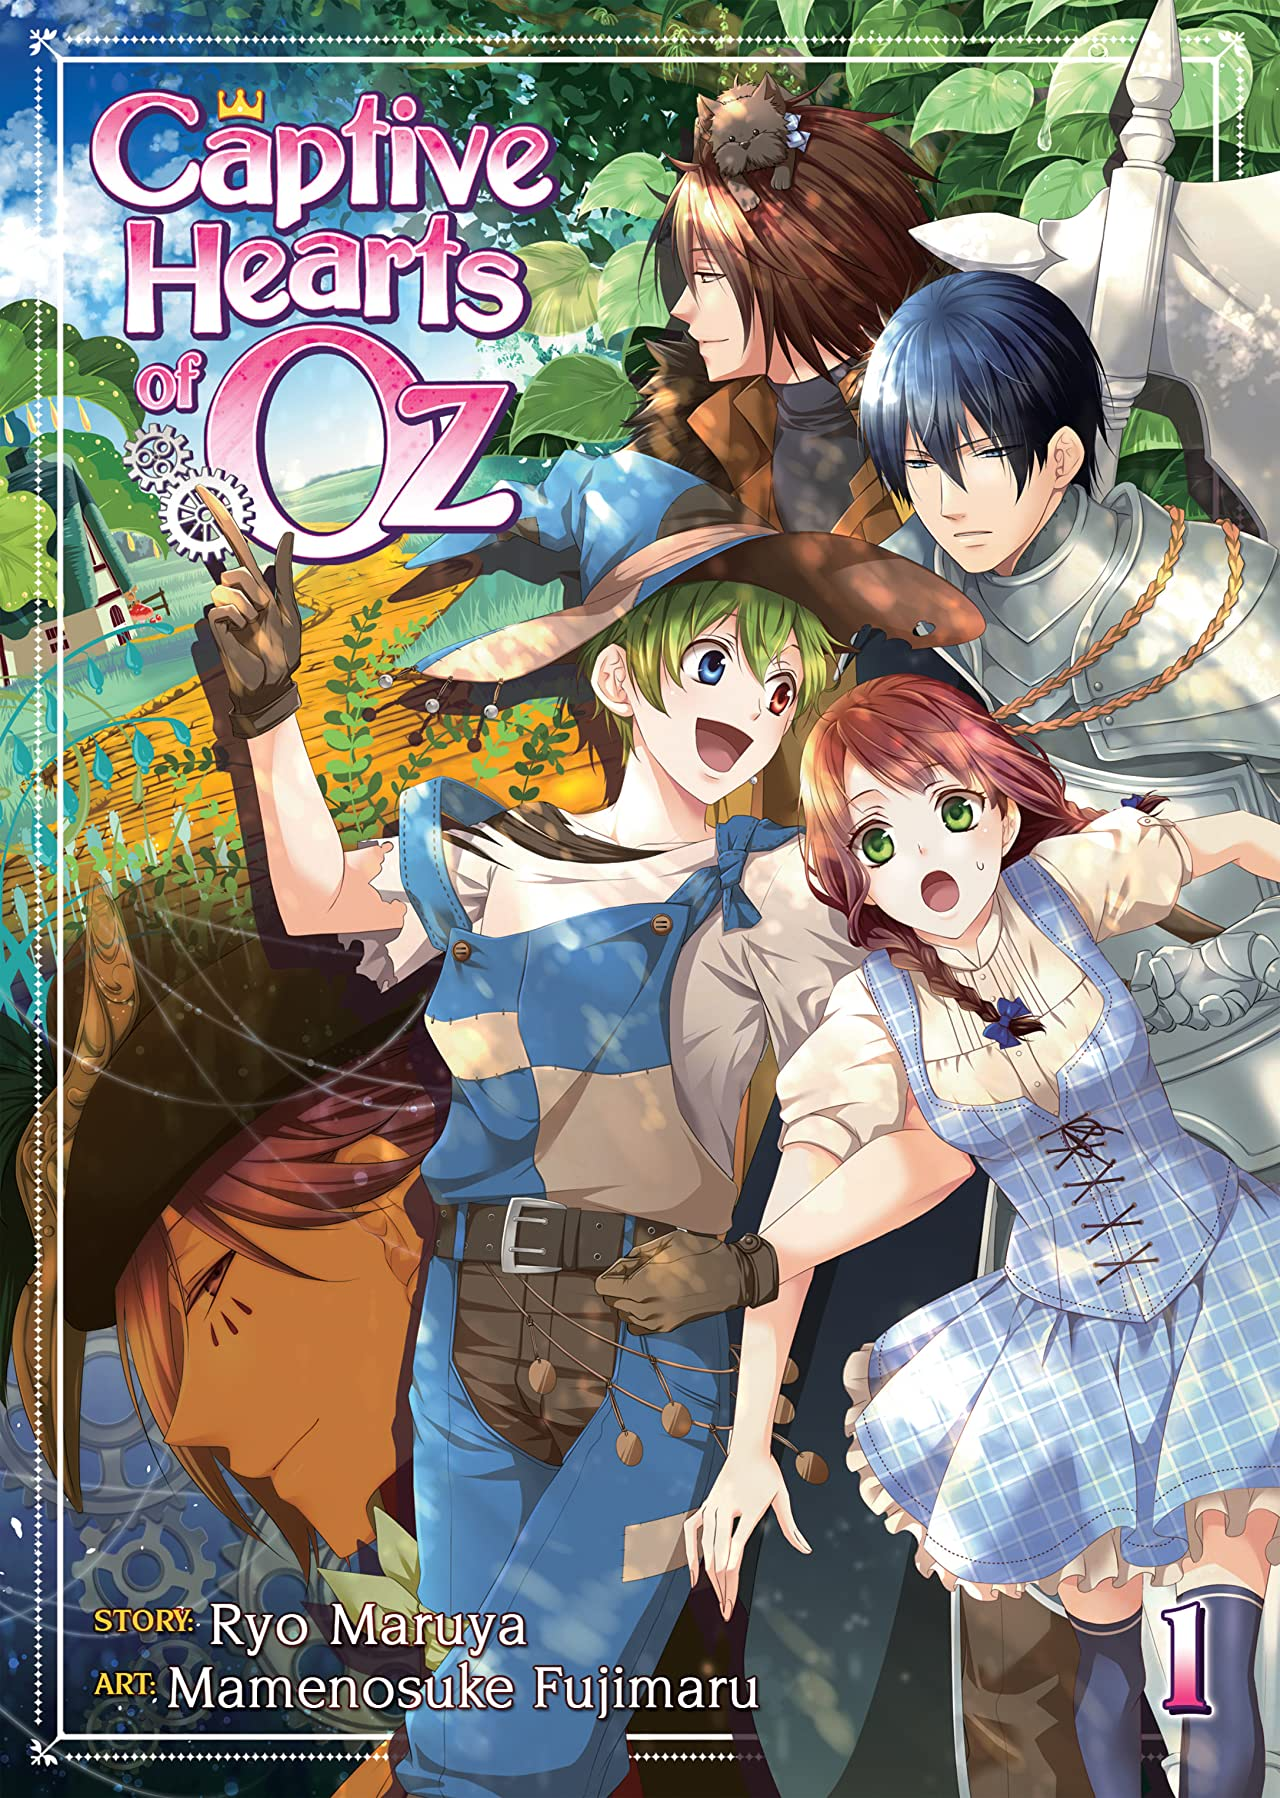 Captive Hearts of Oz Vol. 1